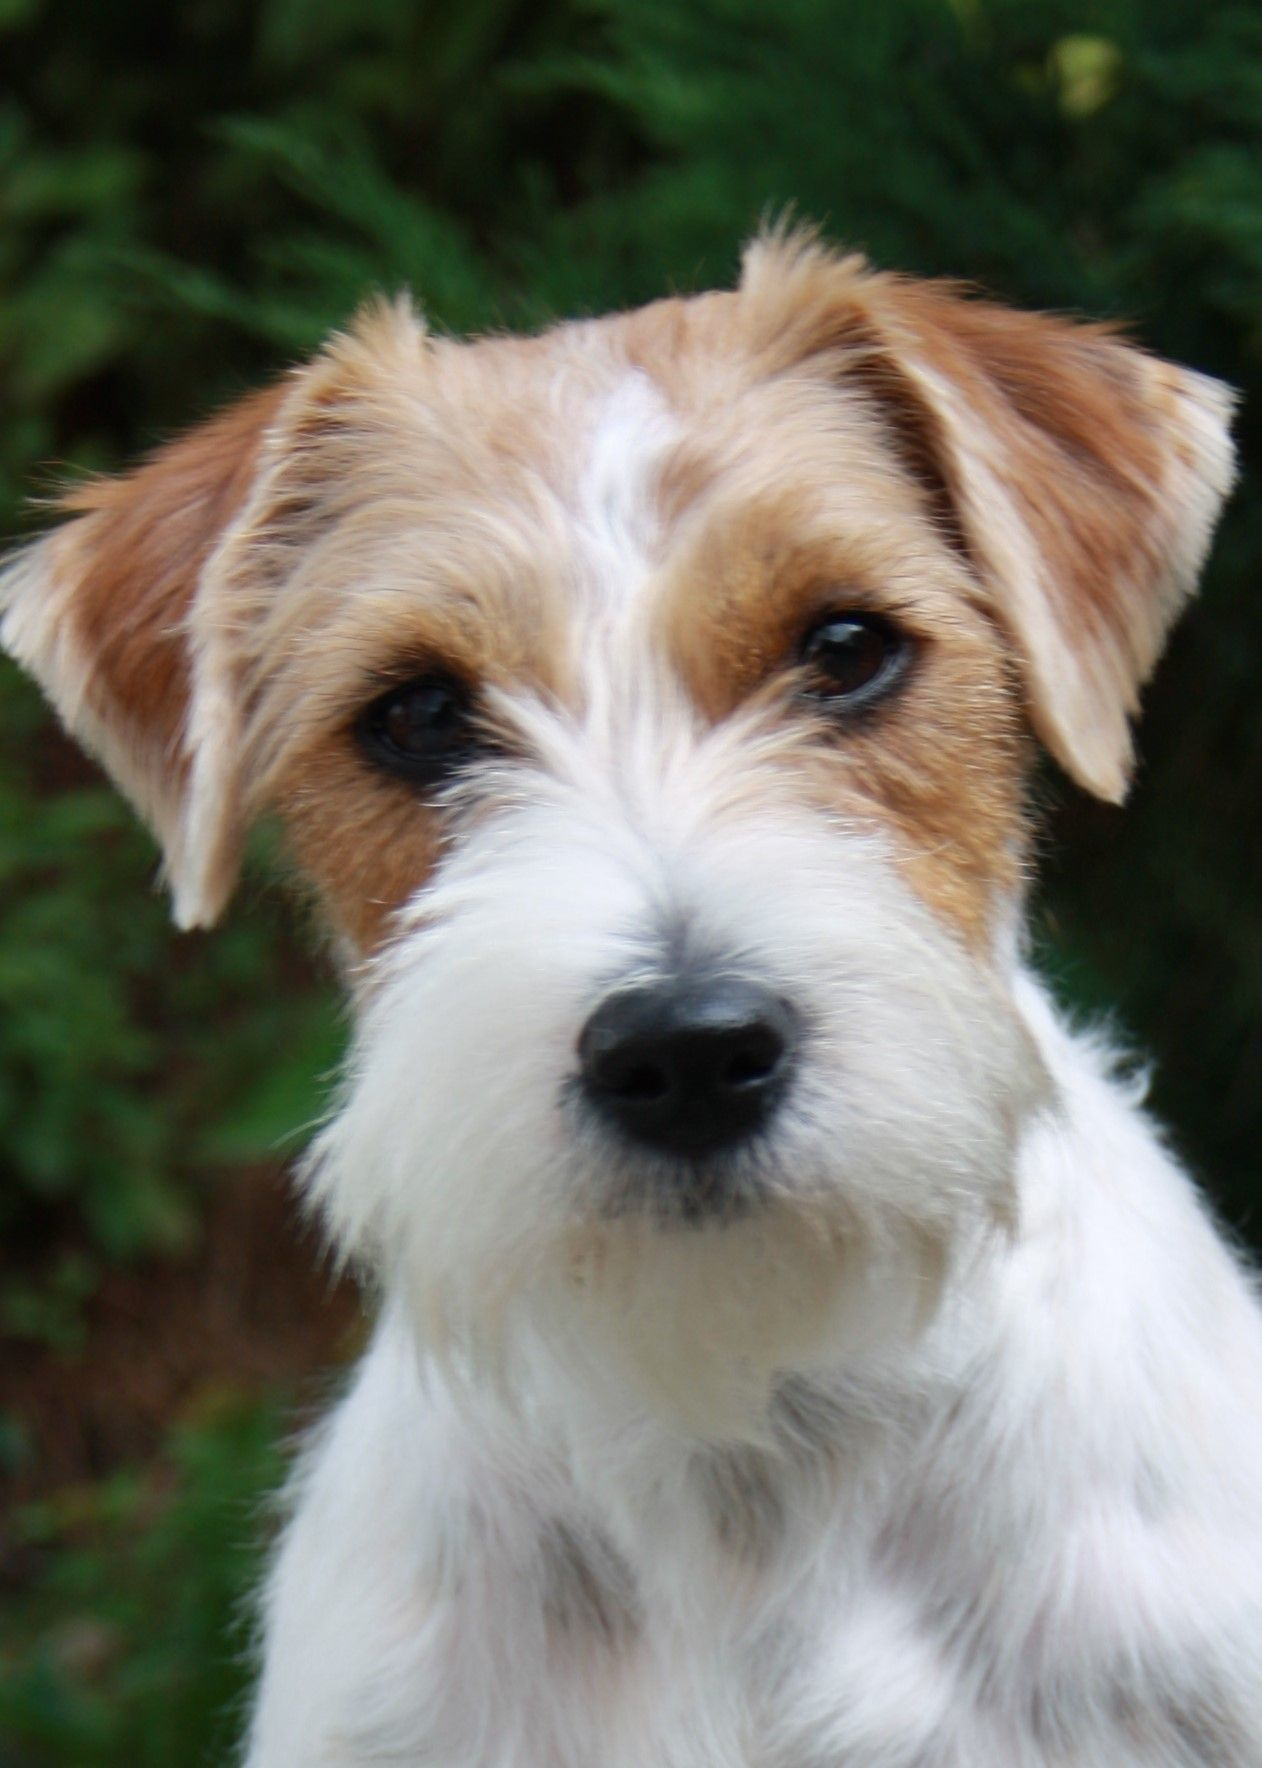 Rough Jack Russell Terrier Jack Russell Terrier Puppies Jack Russell Terrier Jack Russell Dogs